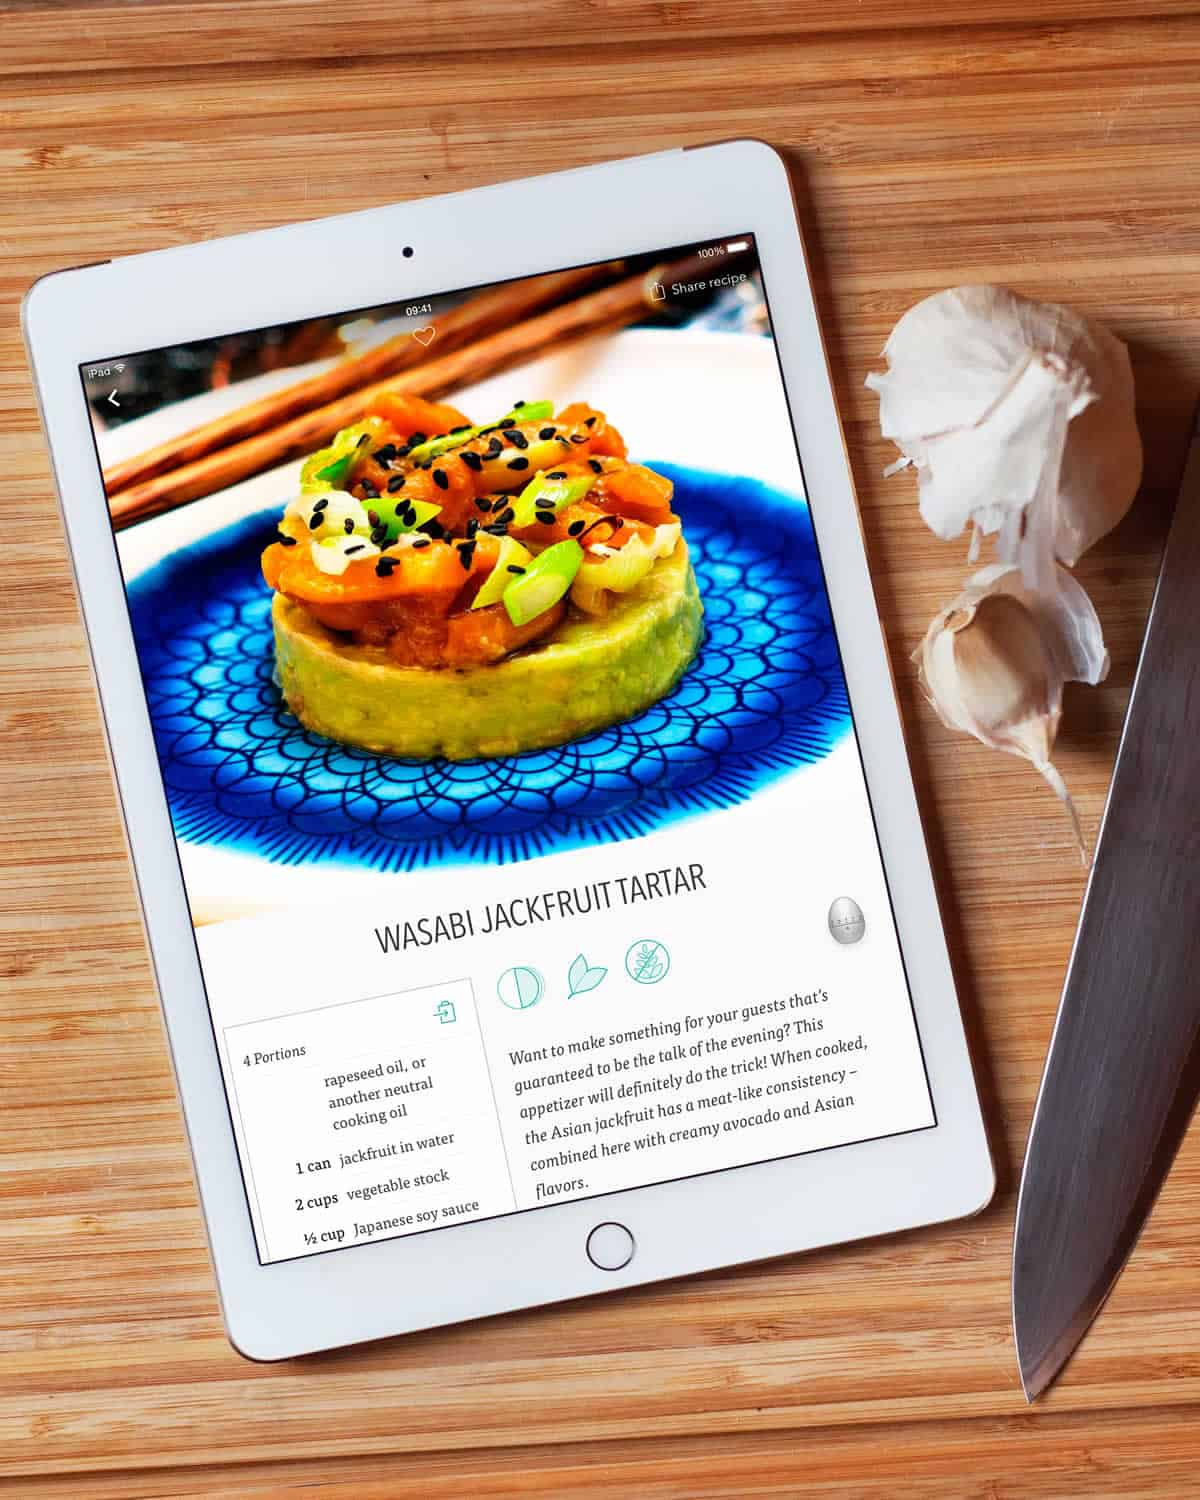 Vegourmet selects the best in food photography to spice up their app design